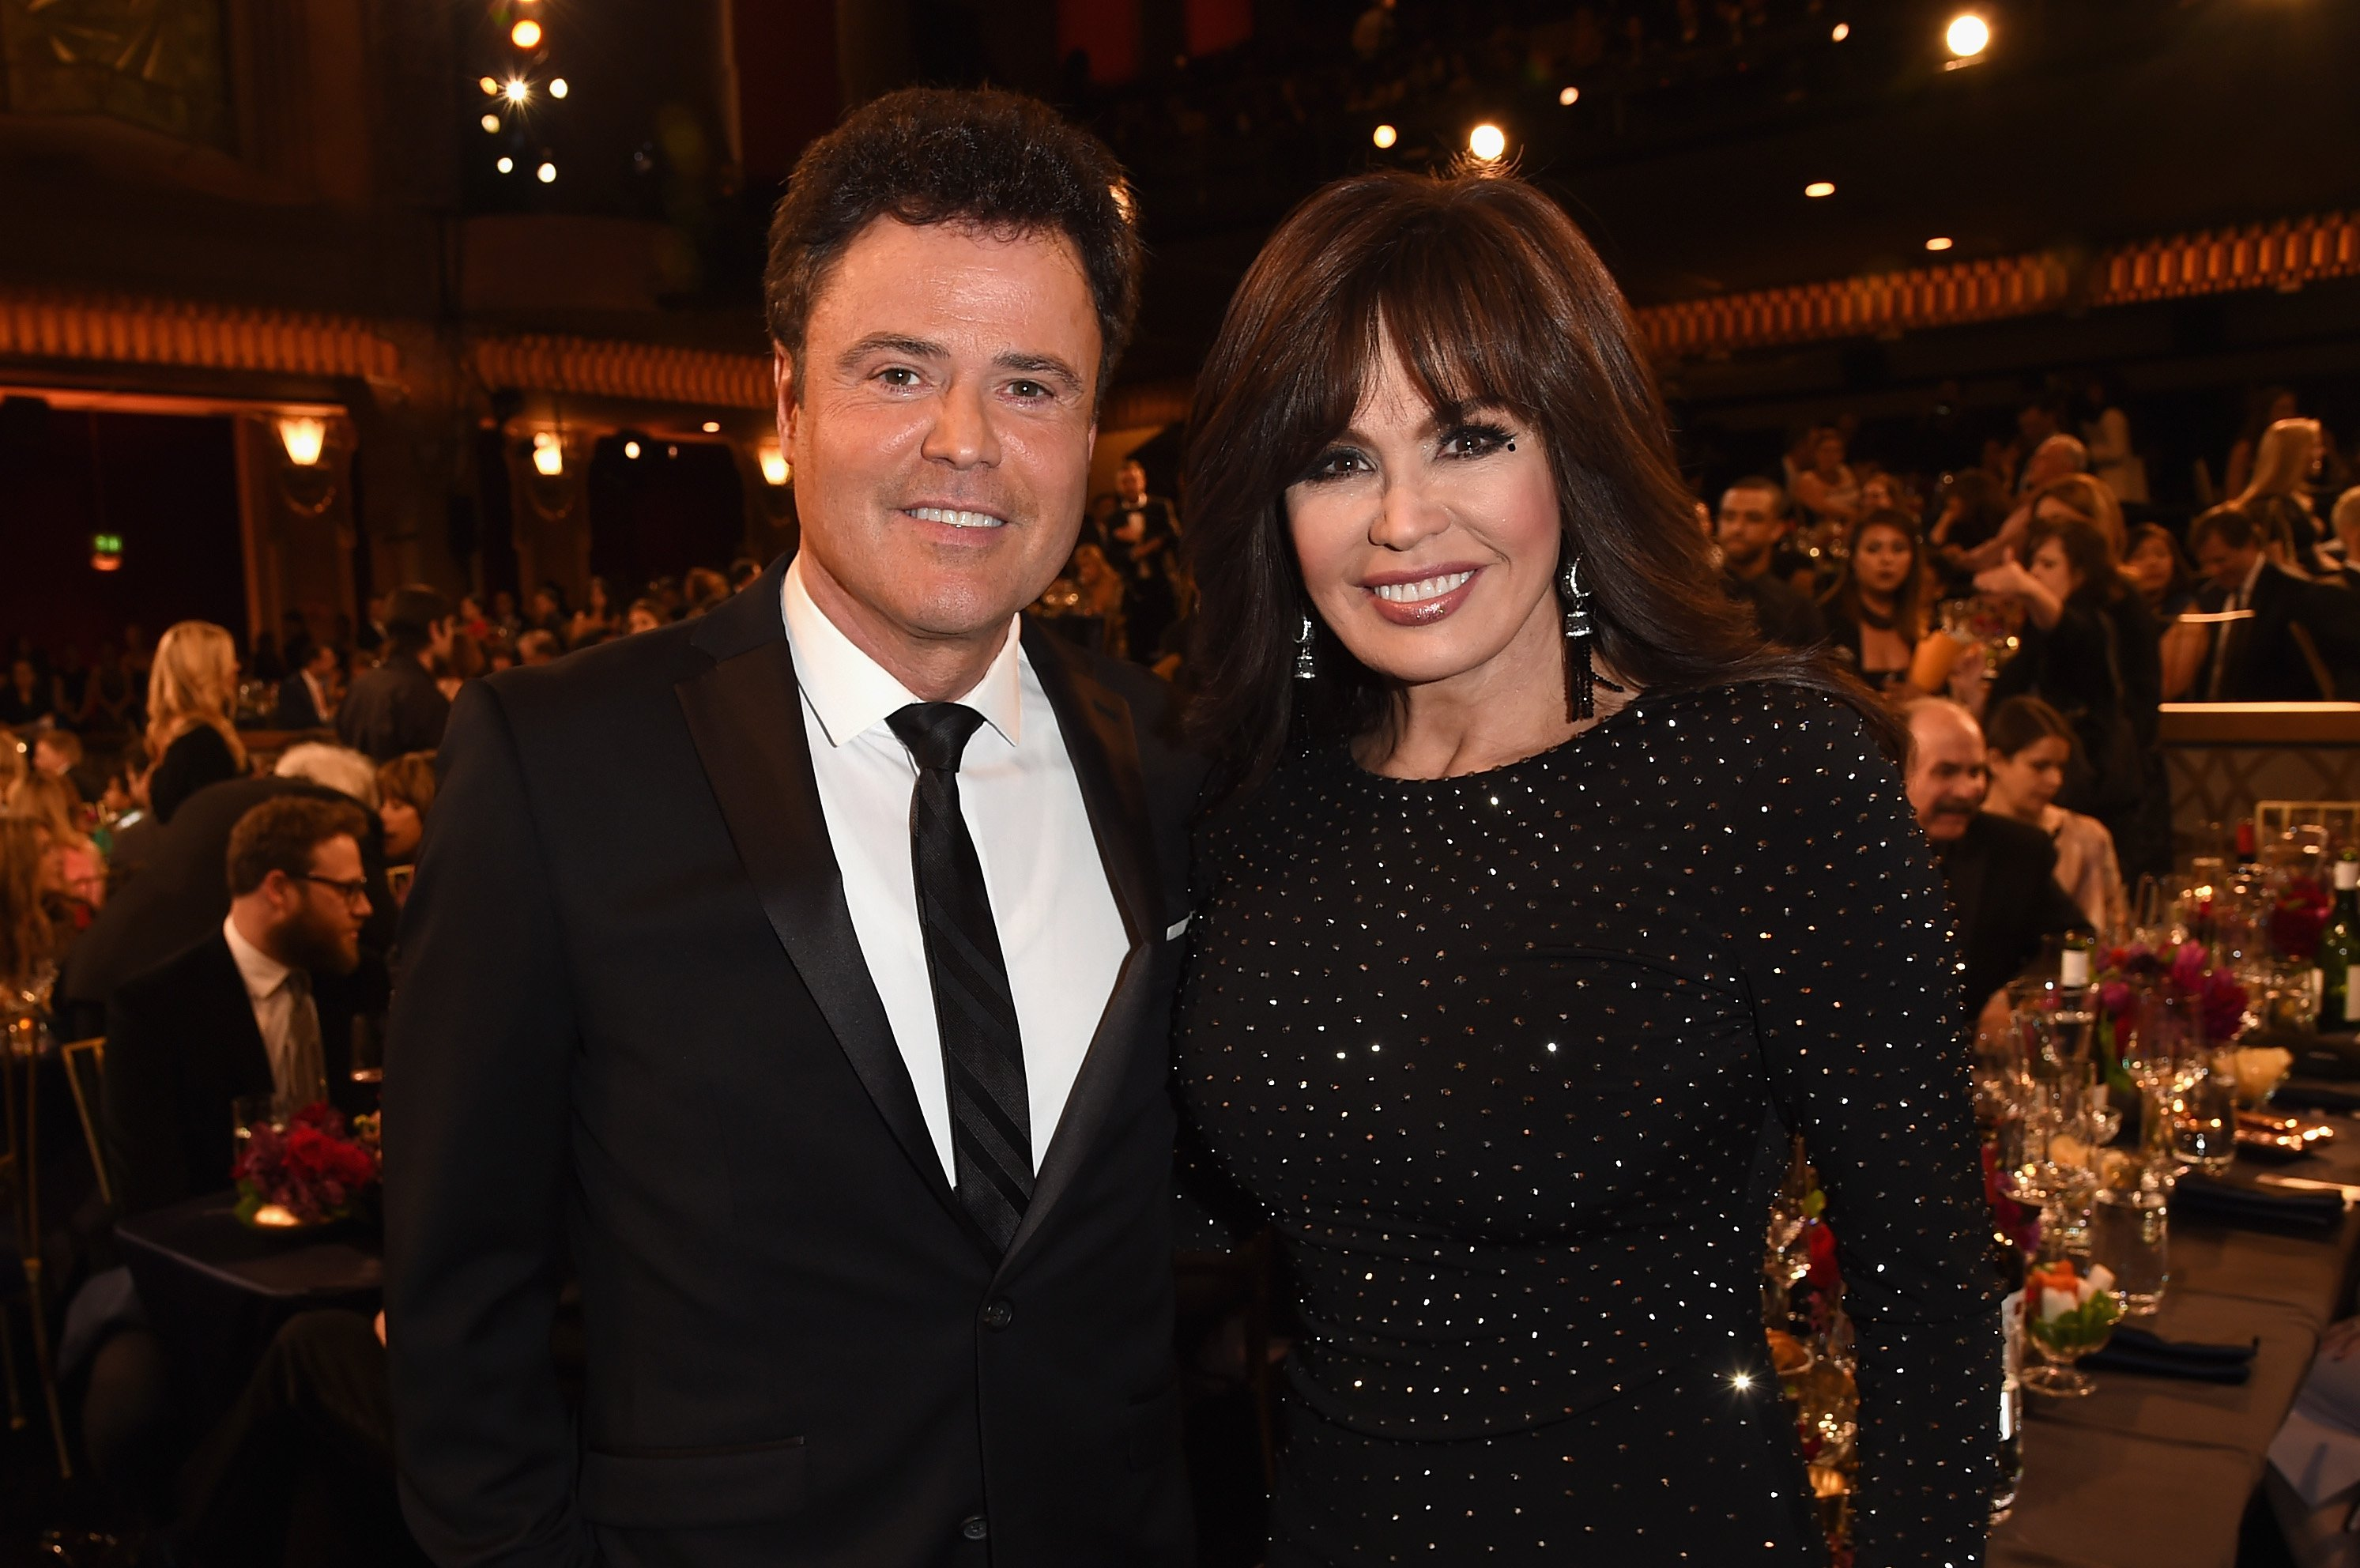 Sibling superstars Donny and Marie Osmond during a 2015 awards ceremony in Beverly Hills. | Photo: Getty Images